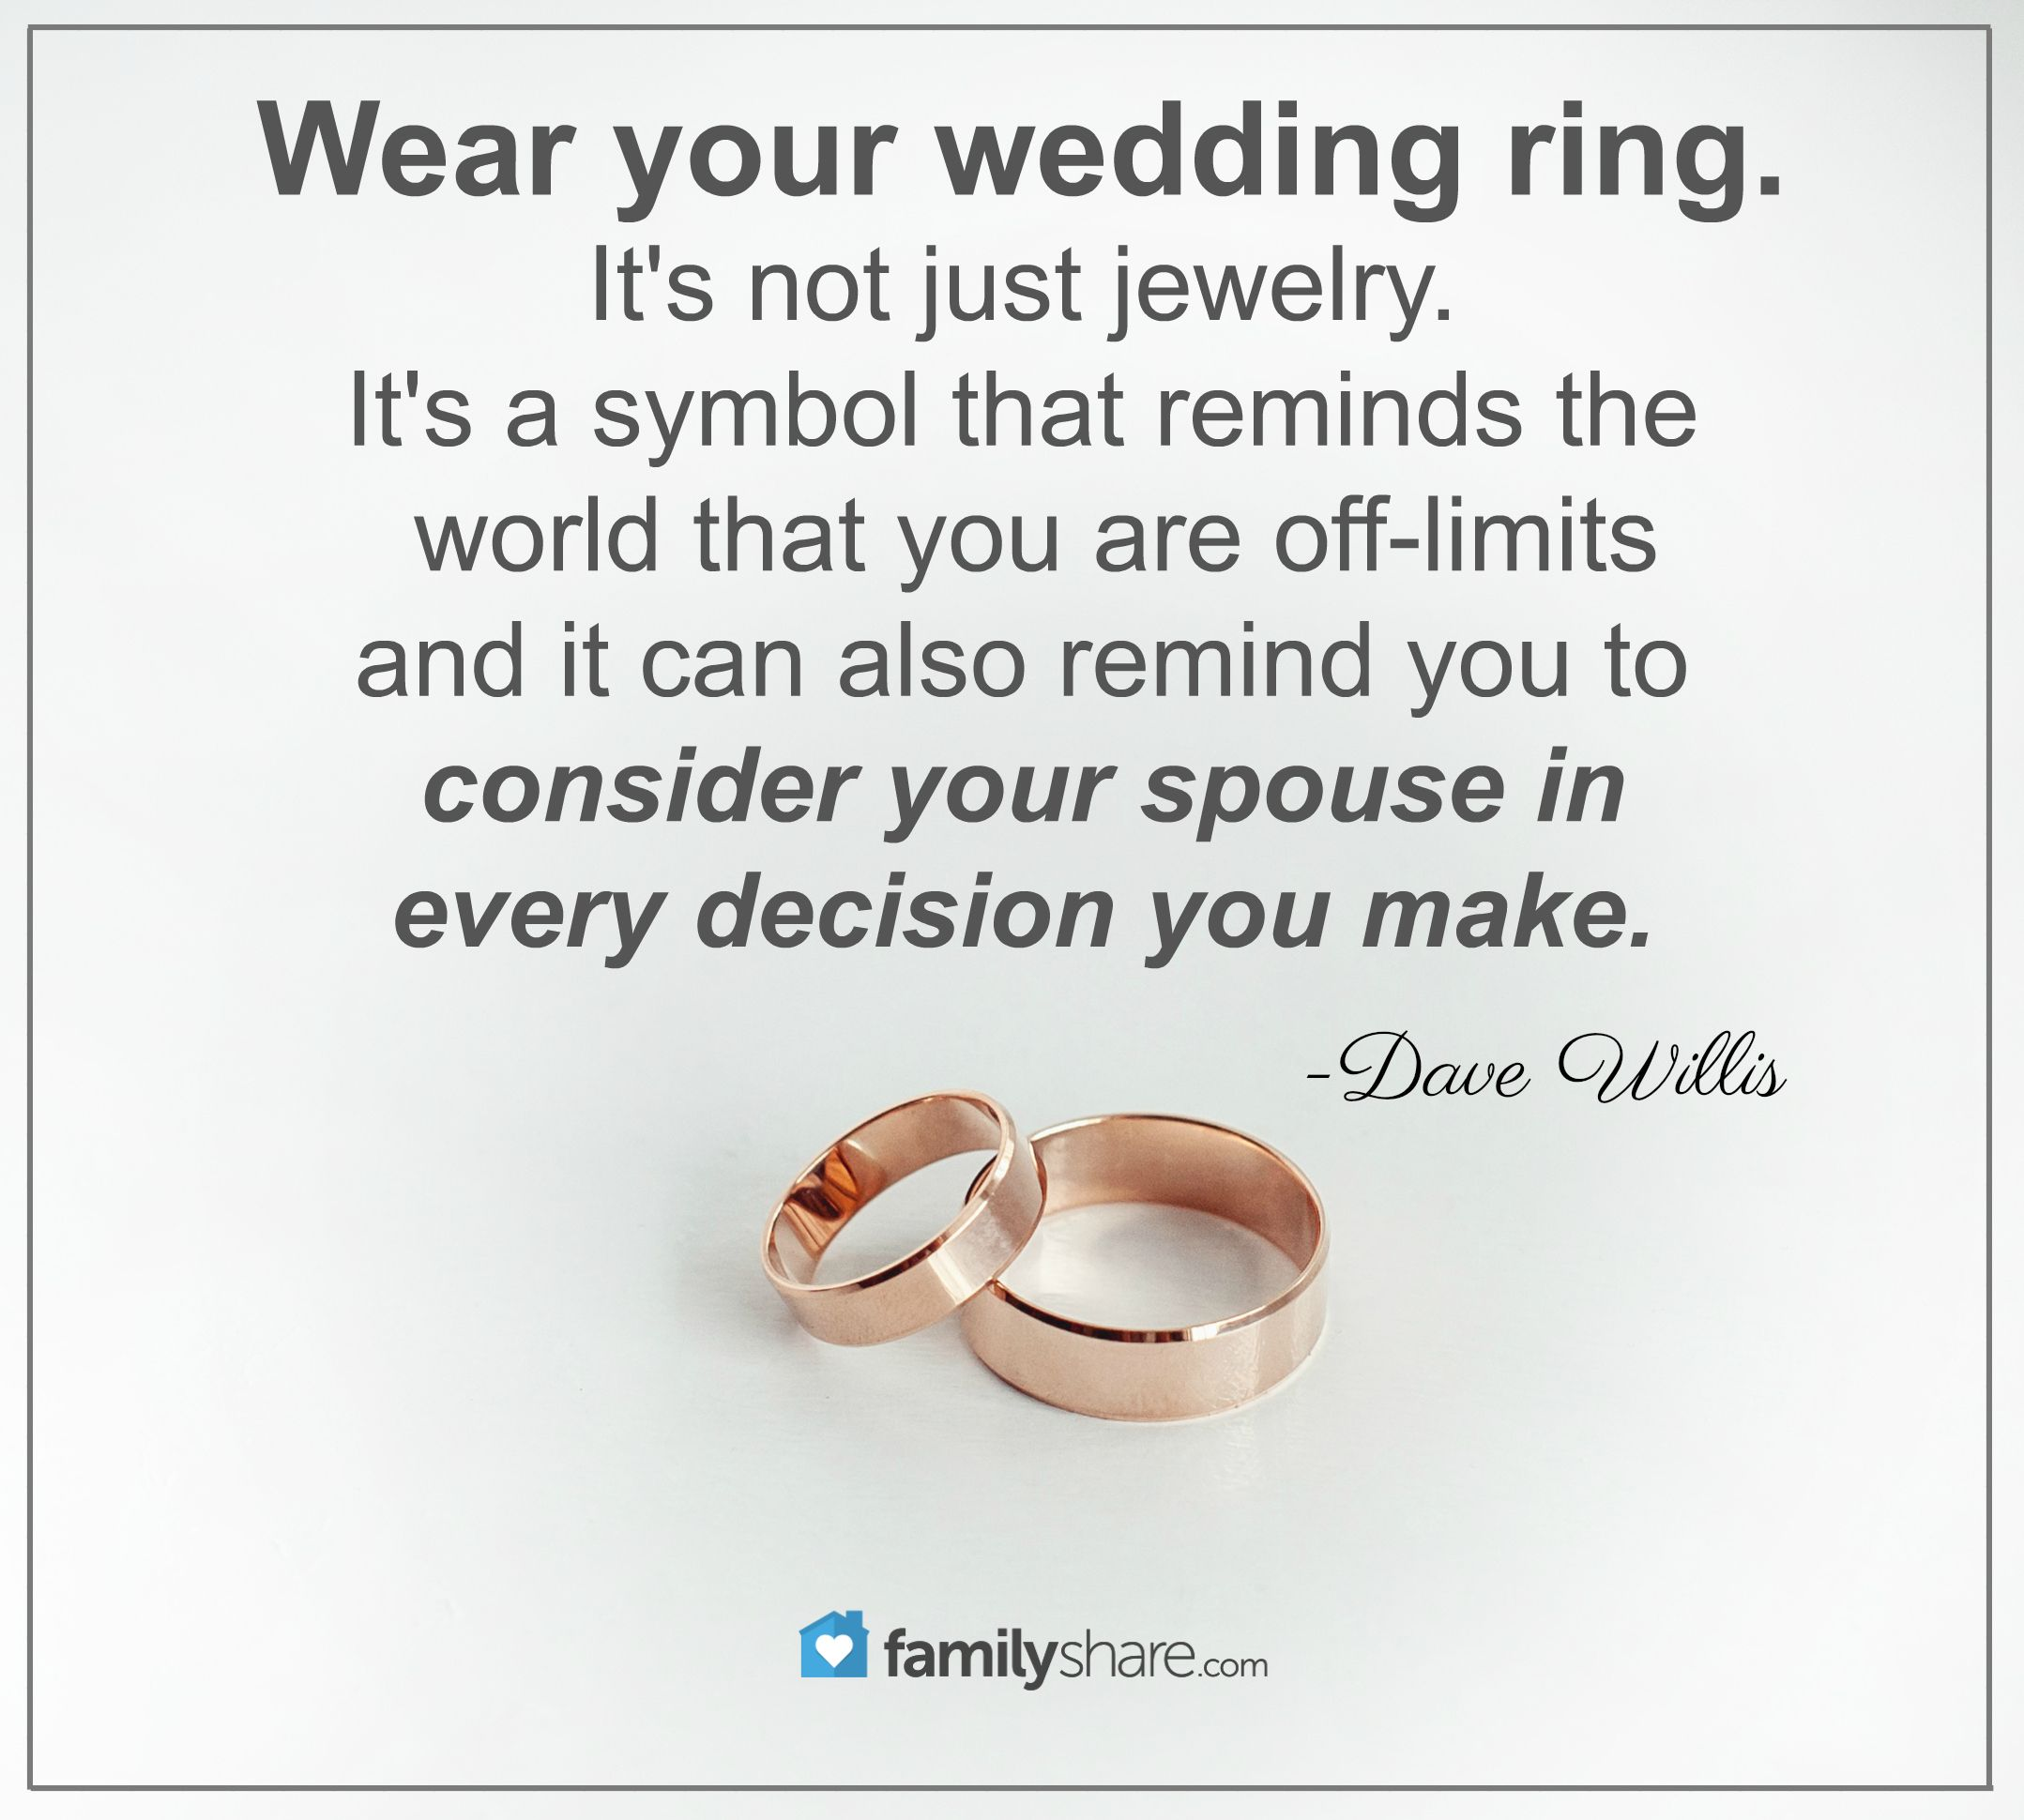 Wear Your Wedding Ring It S Not Just Jewelry It S A Symbol That Reminds The World That You Are Off Lim Love And Marriage Marriage Quotes Wedding Rings Quotes